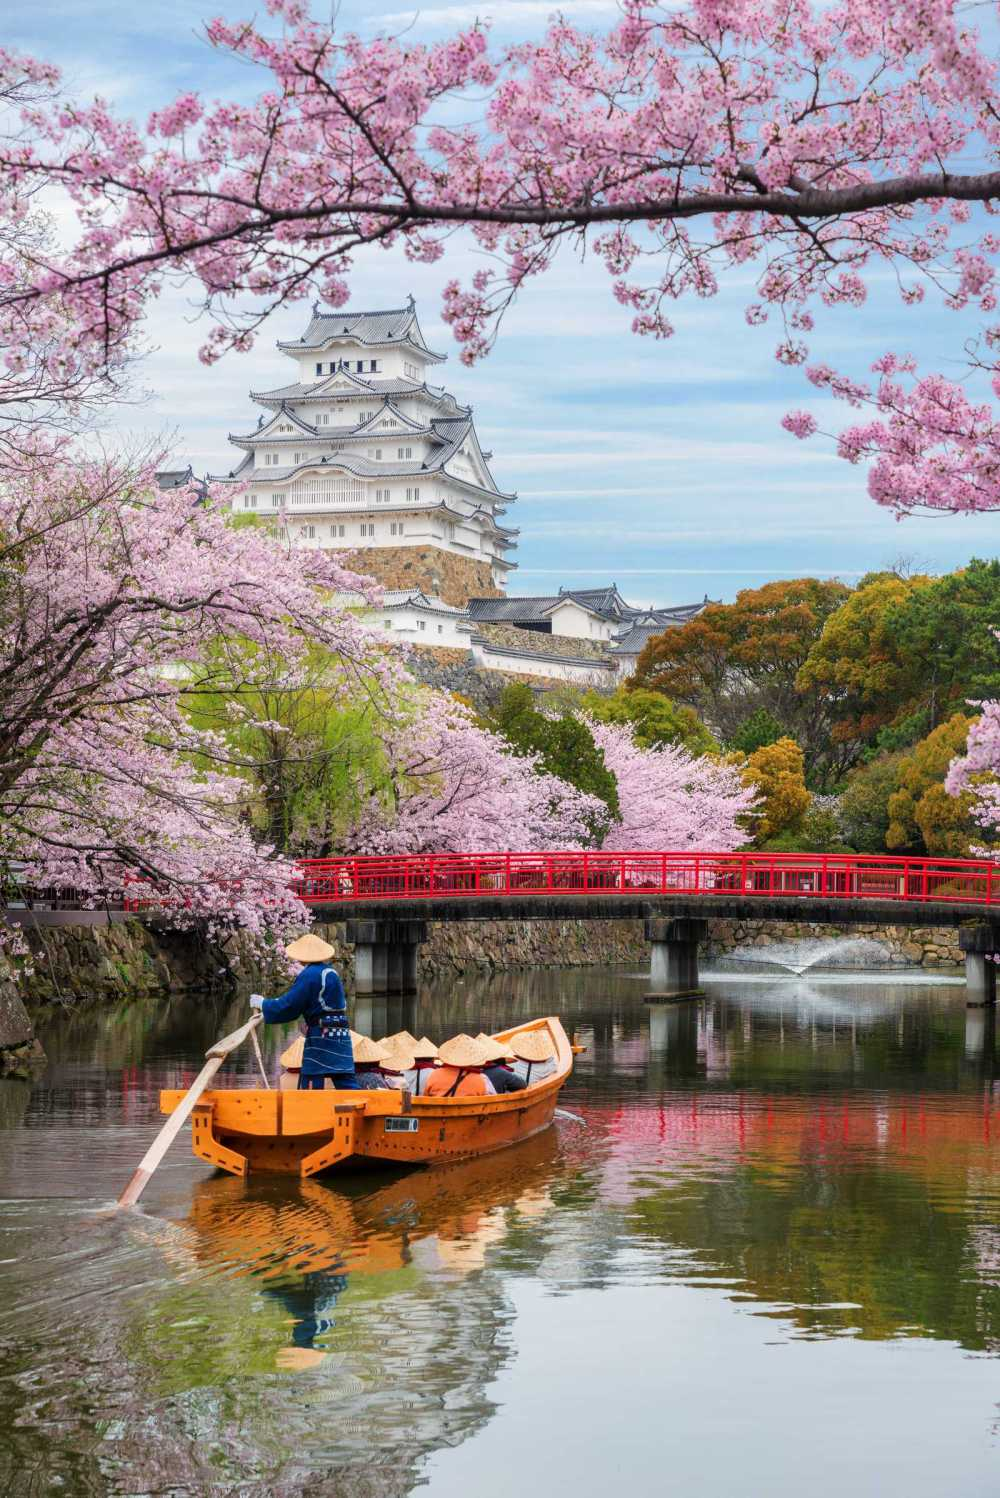 11 Very Best Things To Do In Osaka - Japan (3)